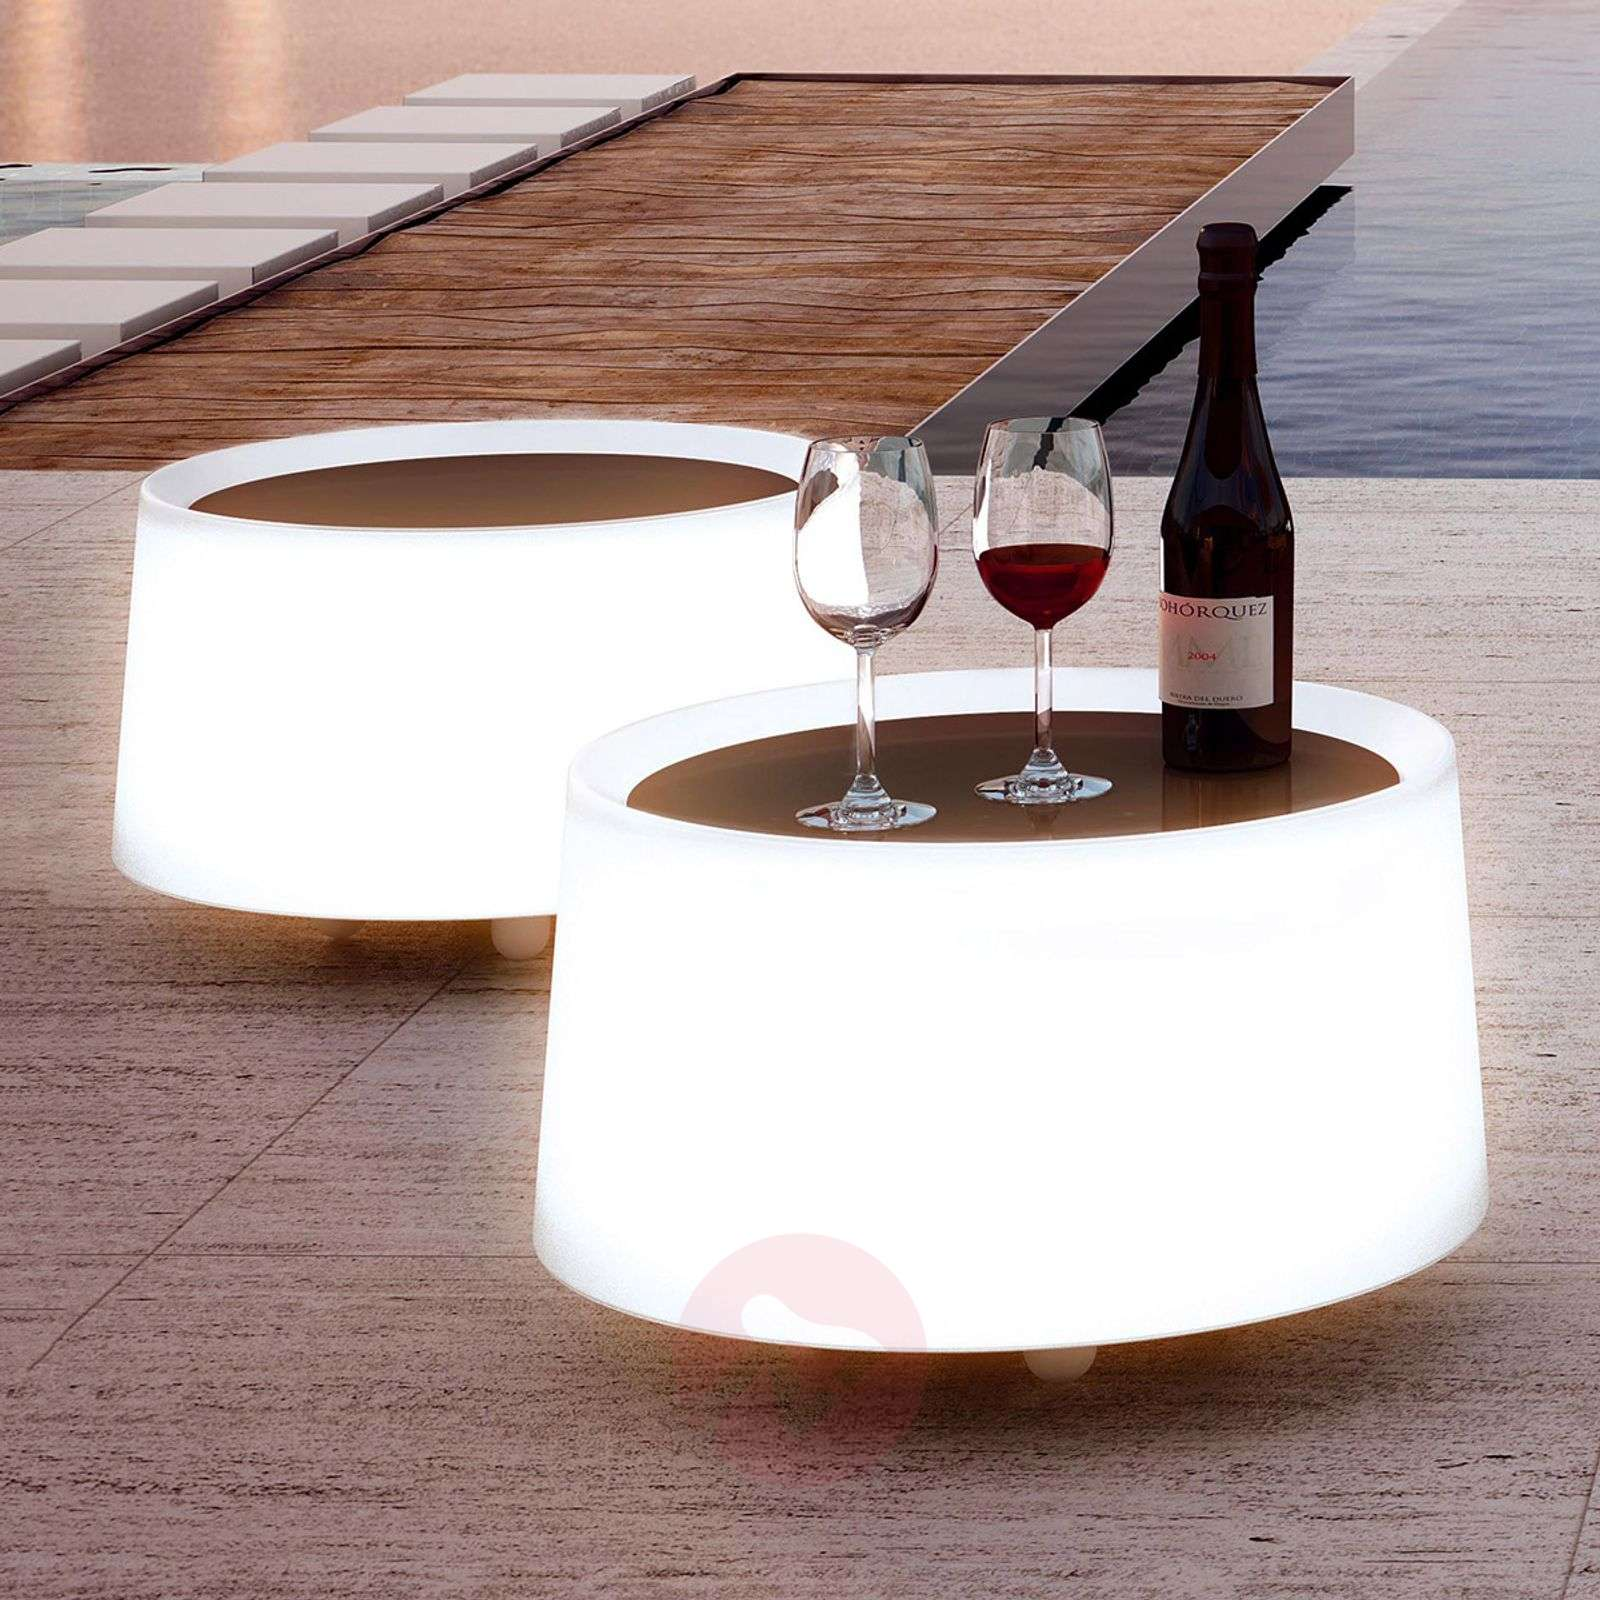 Dot an illuminated table for outdoors-3027082-01